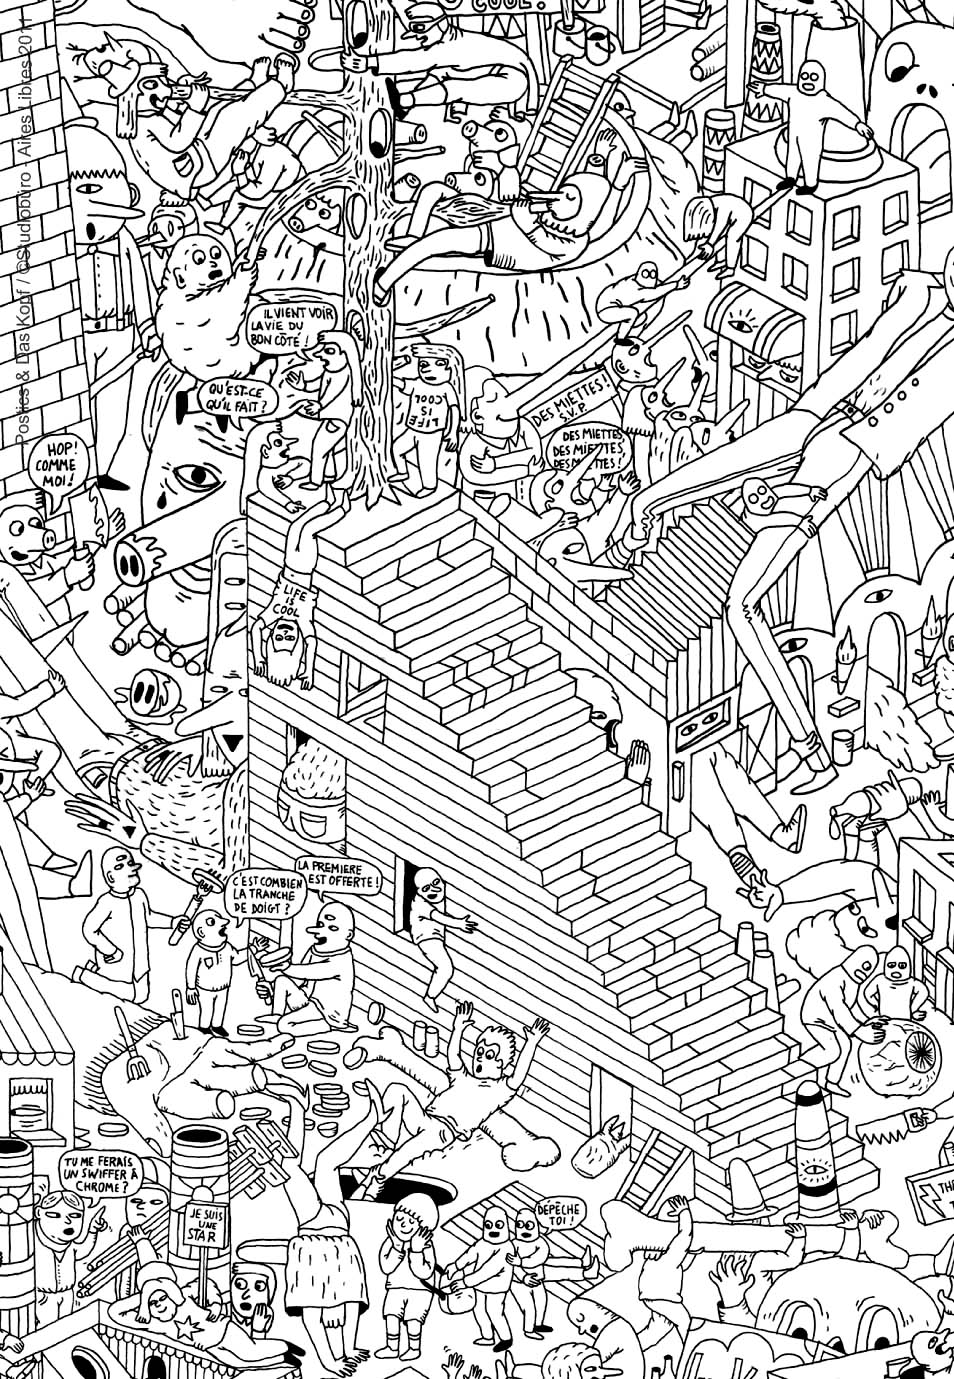 Very complex coloring page of an imaginary city with robots and other strange creatures - 2